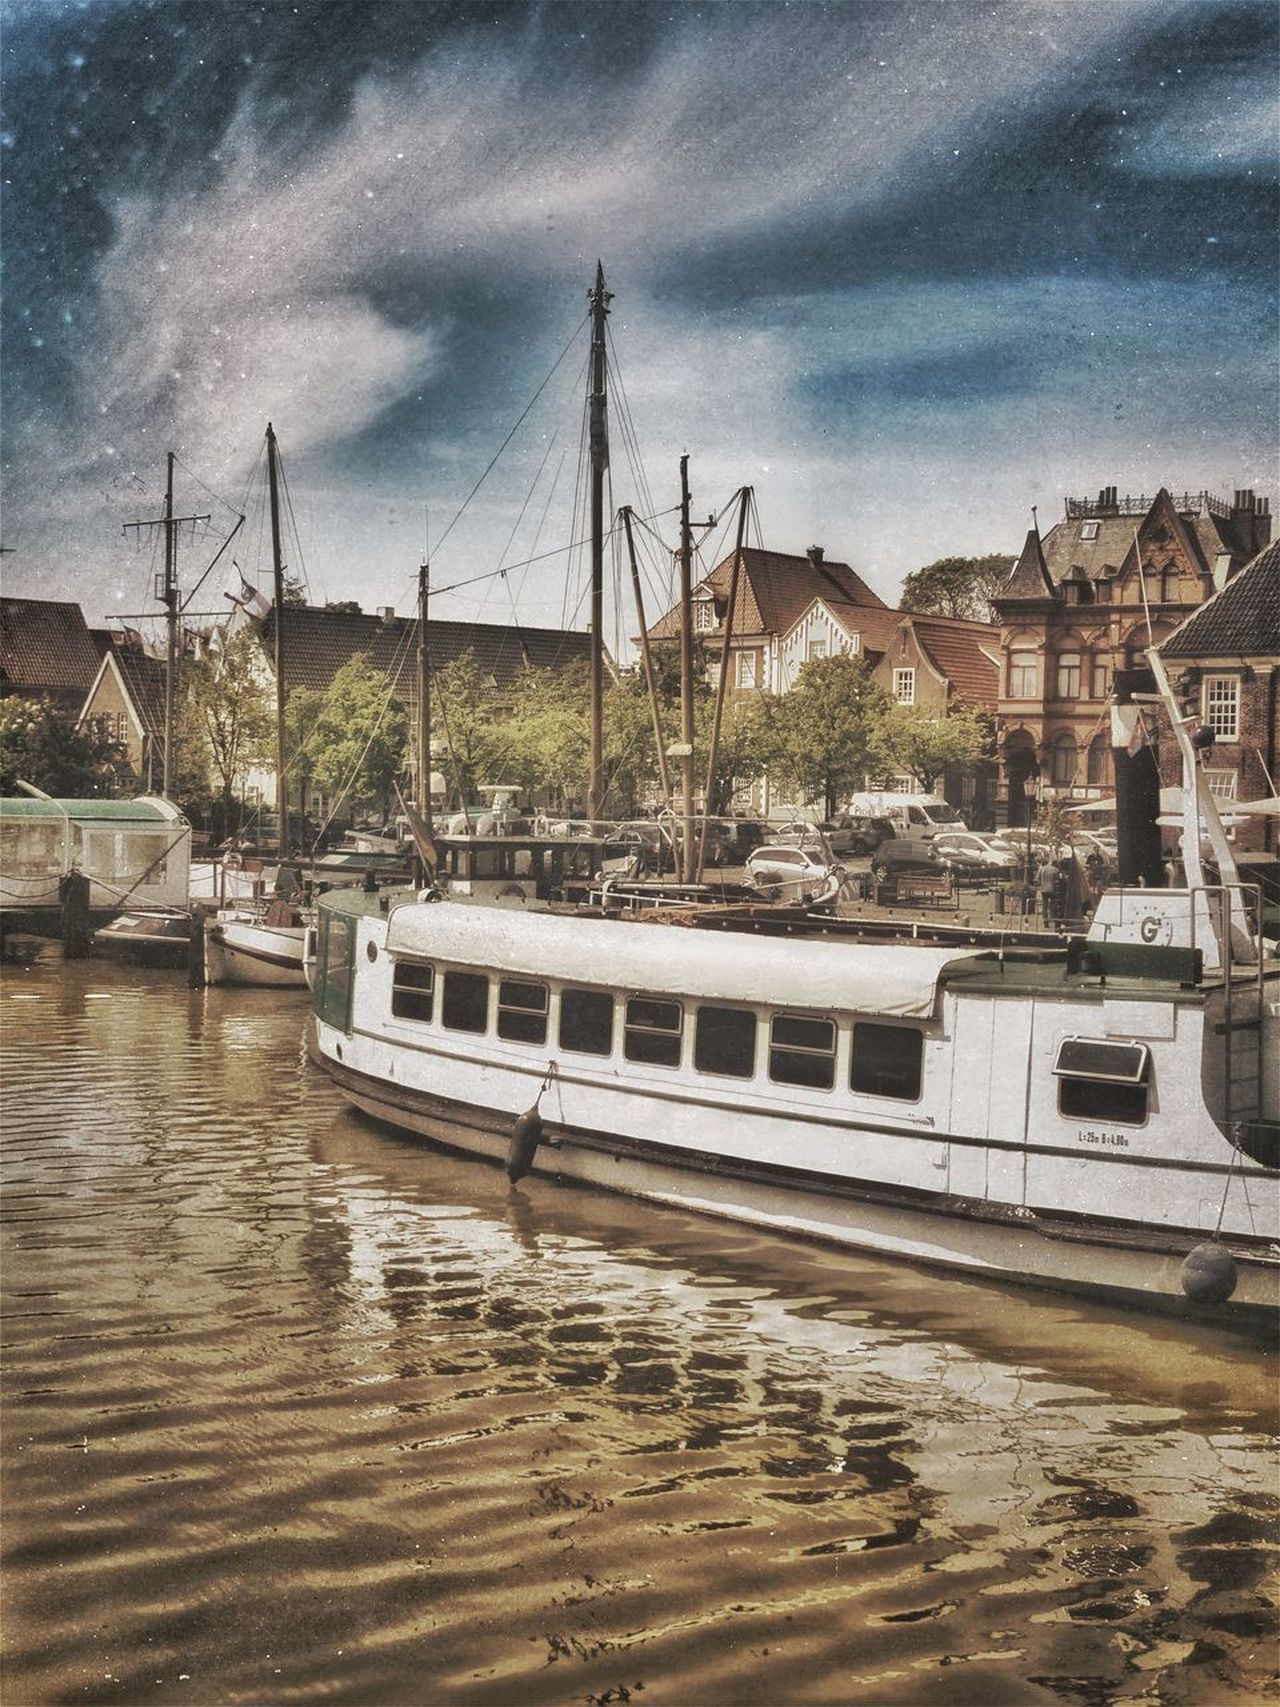 Nautical Vessel Transportation Mode Of Transport Water Sky Cloud - Sky Outdoors Architecture Harbor Myhometown Leer (Ostfriesland) Pixelated Taking Photos Urban Exploration EyeEm Multi Colored Architecture Sea Harbor City Landscape Ship Cityscape Blue